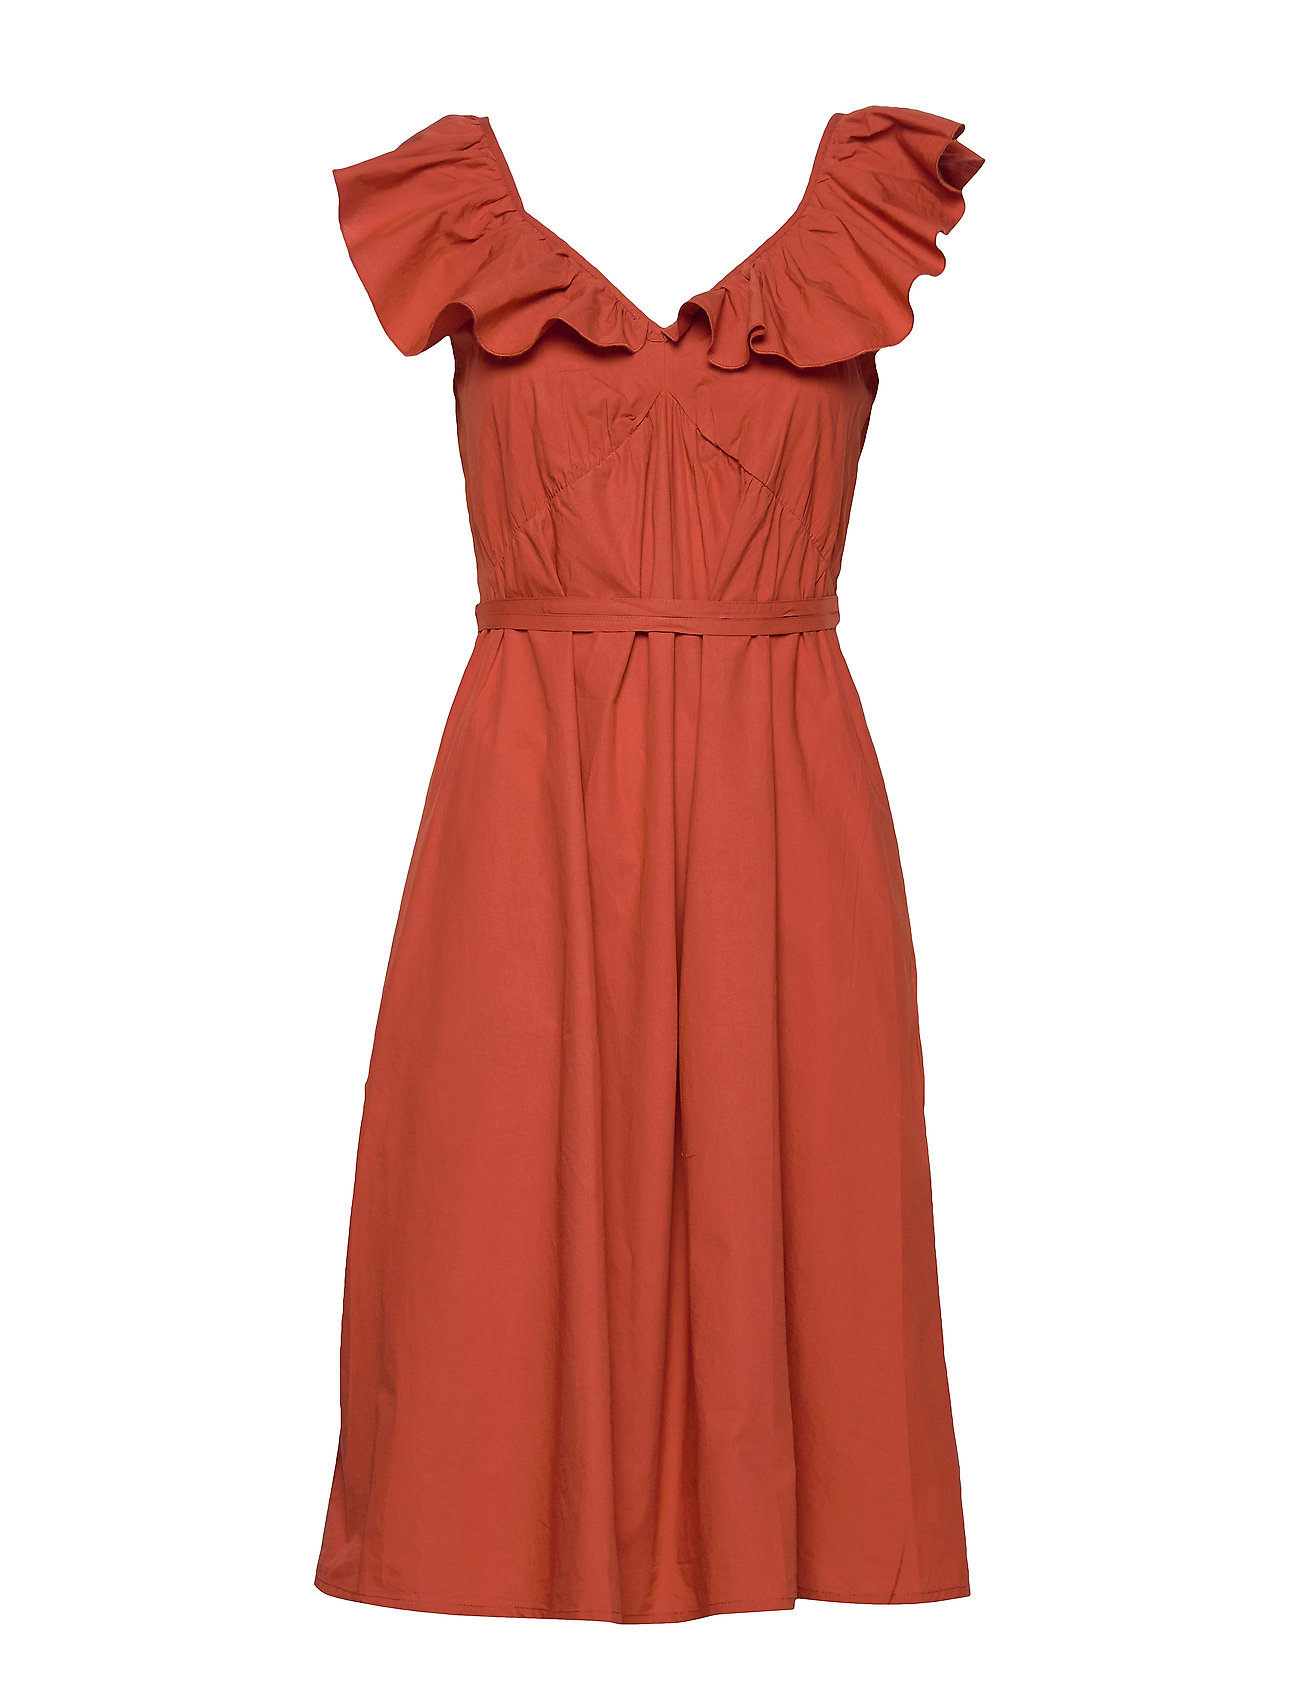 French Connection AZANA POPLIN RUFFLE DRESS - RED OCHRE